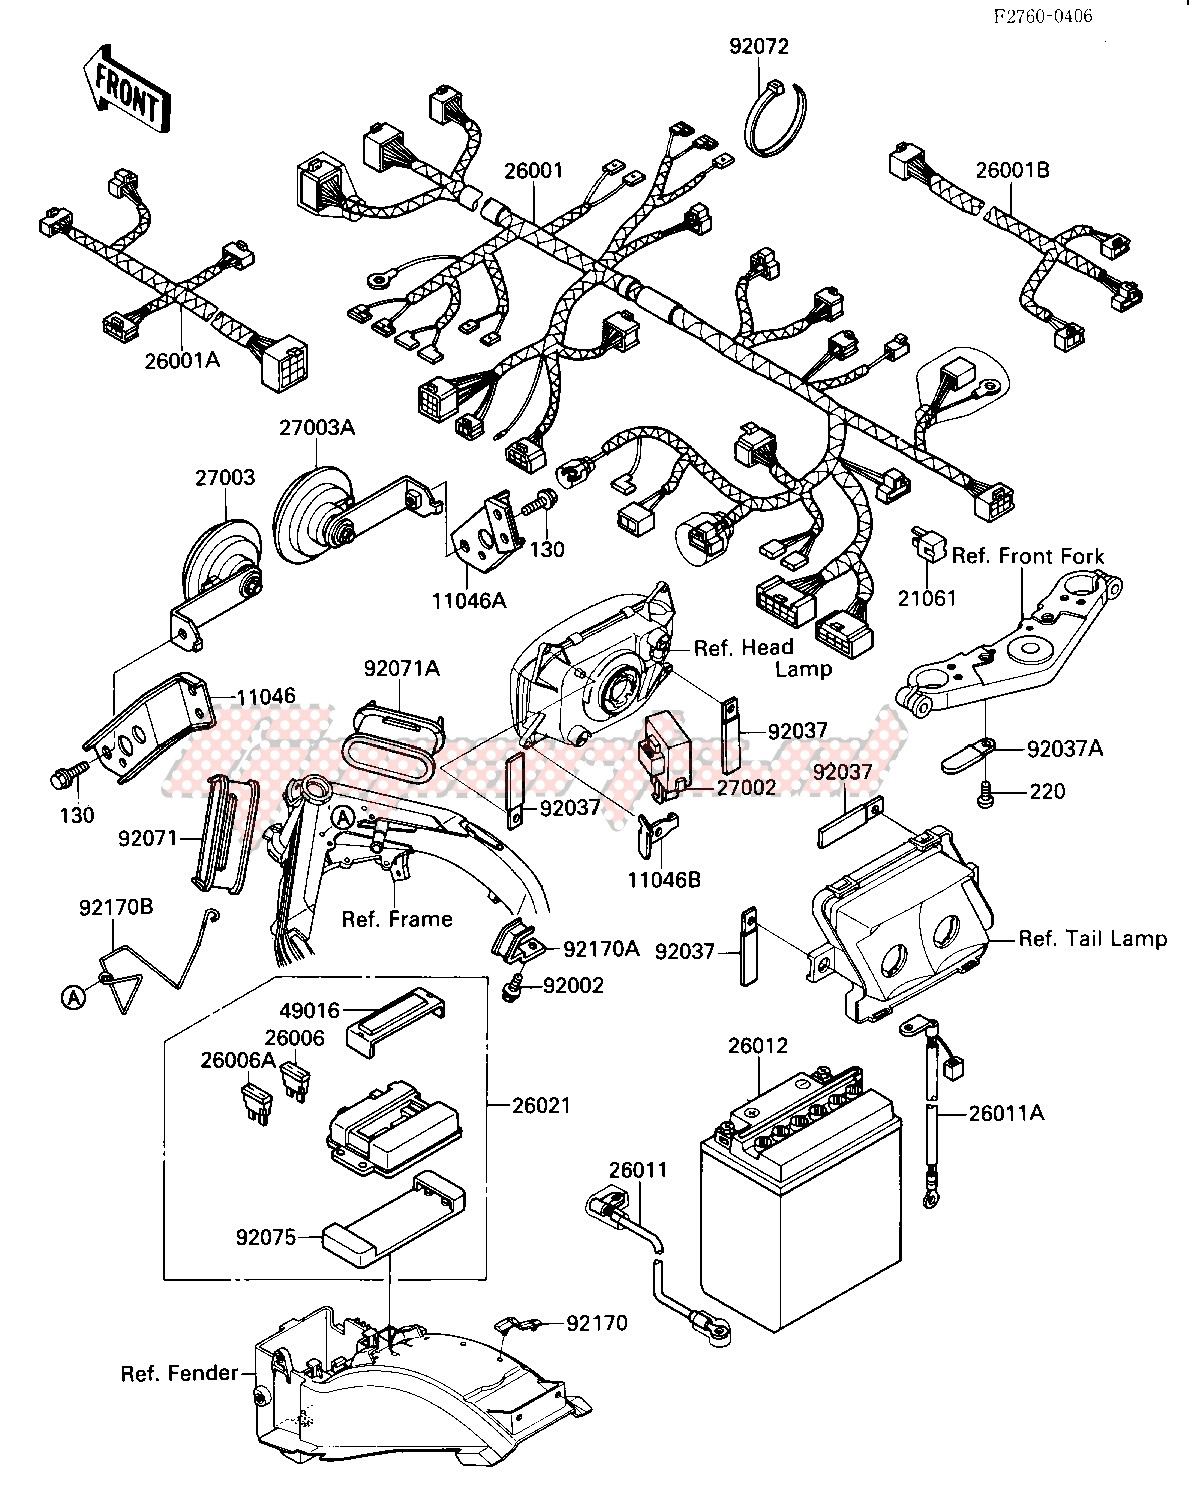 [DIAGRAM_38IS]  OEM CHASSIS ELECTRICAL EQUIPMENT - (Kawasaki [Motorcycle] ZX 1000 B [NINJA  ZX-10] (B1-B2) [NINJA ZX-10] / 1988) | Goparts | Zx1000 Wiring Diagram |  | Goparts